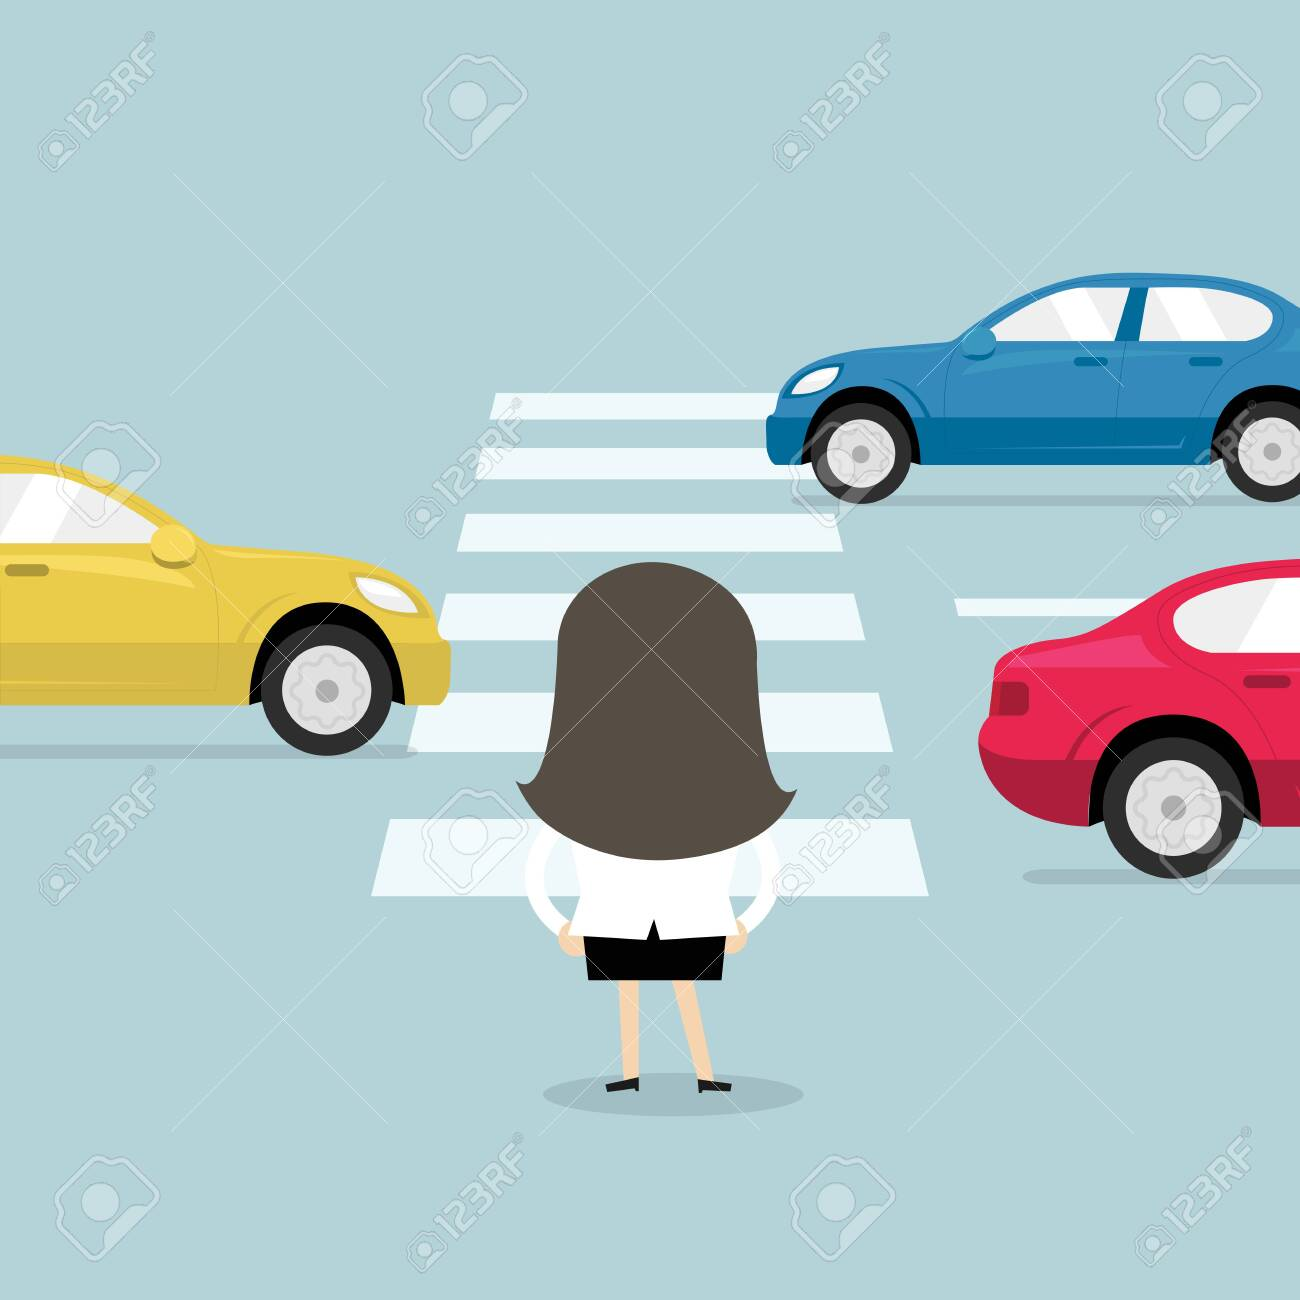 Businesswoman waiting to cross the road at the crosswalk. - 137761114